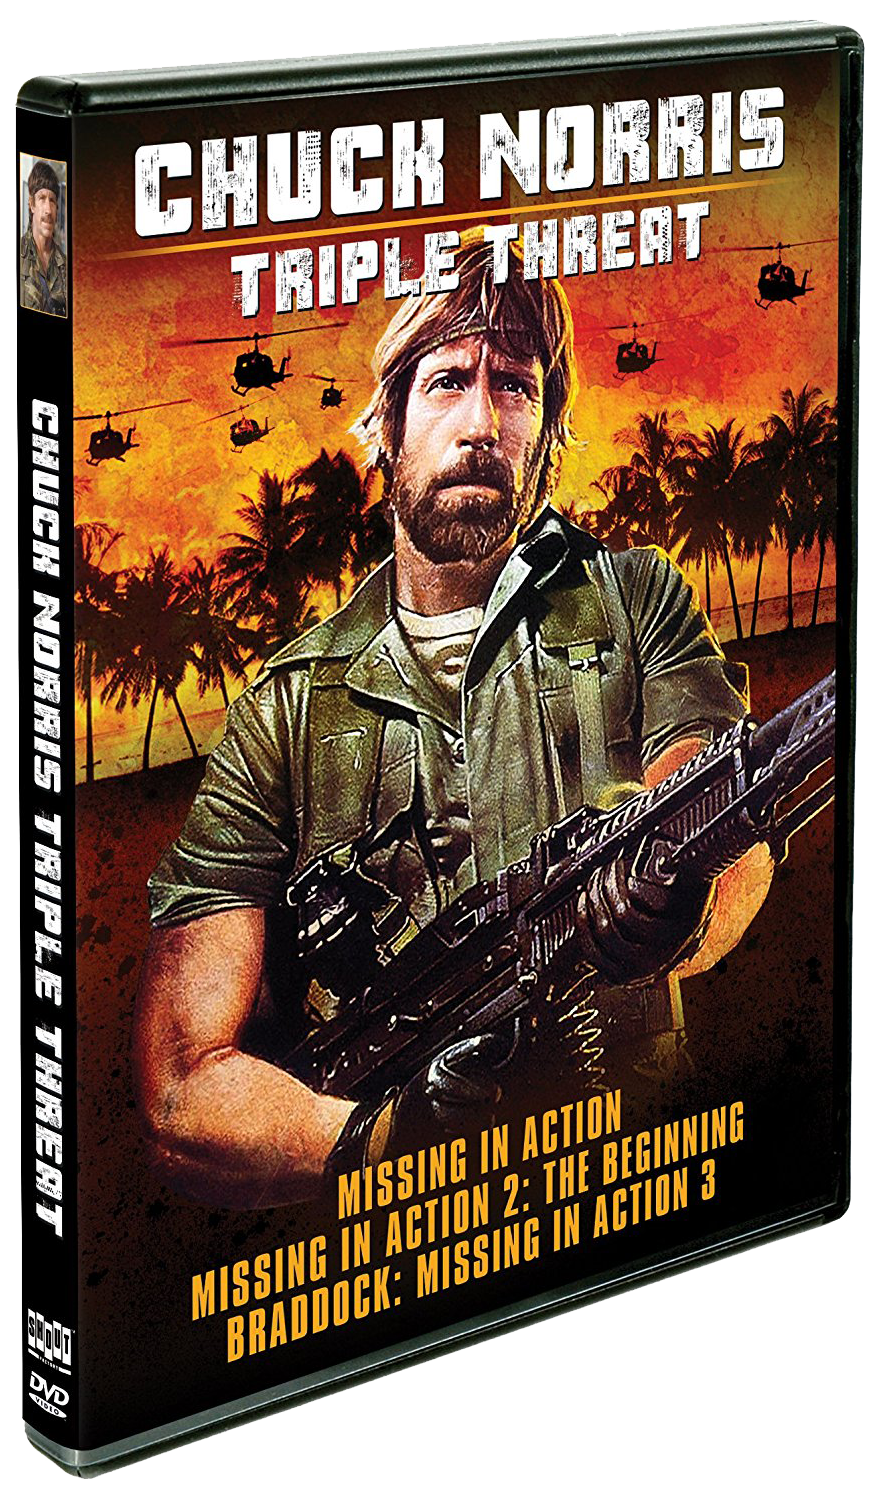 Triple Threat: Chuck Norris | DVD (Shout! Factory)  Missing In Action Poster